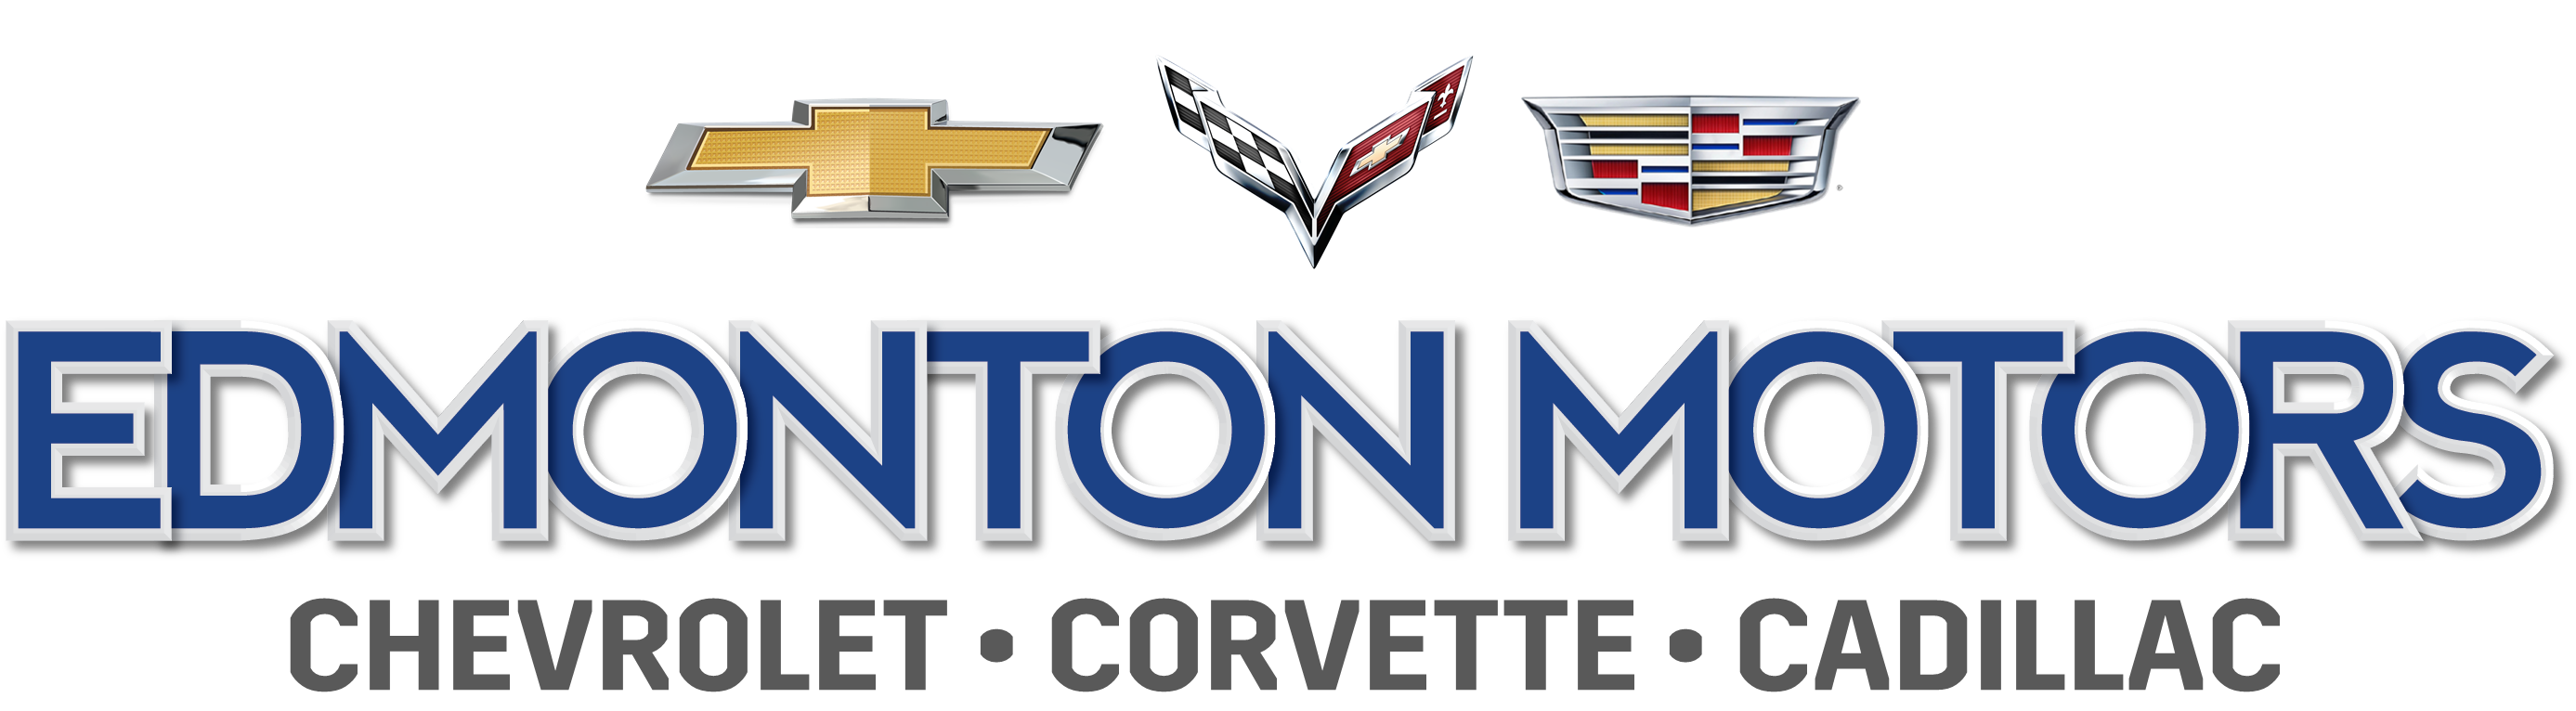 Edmonton Motors Ltd